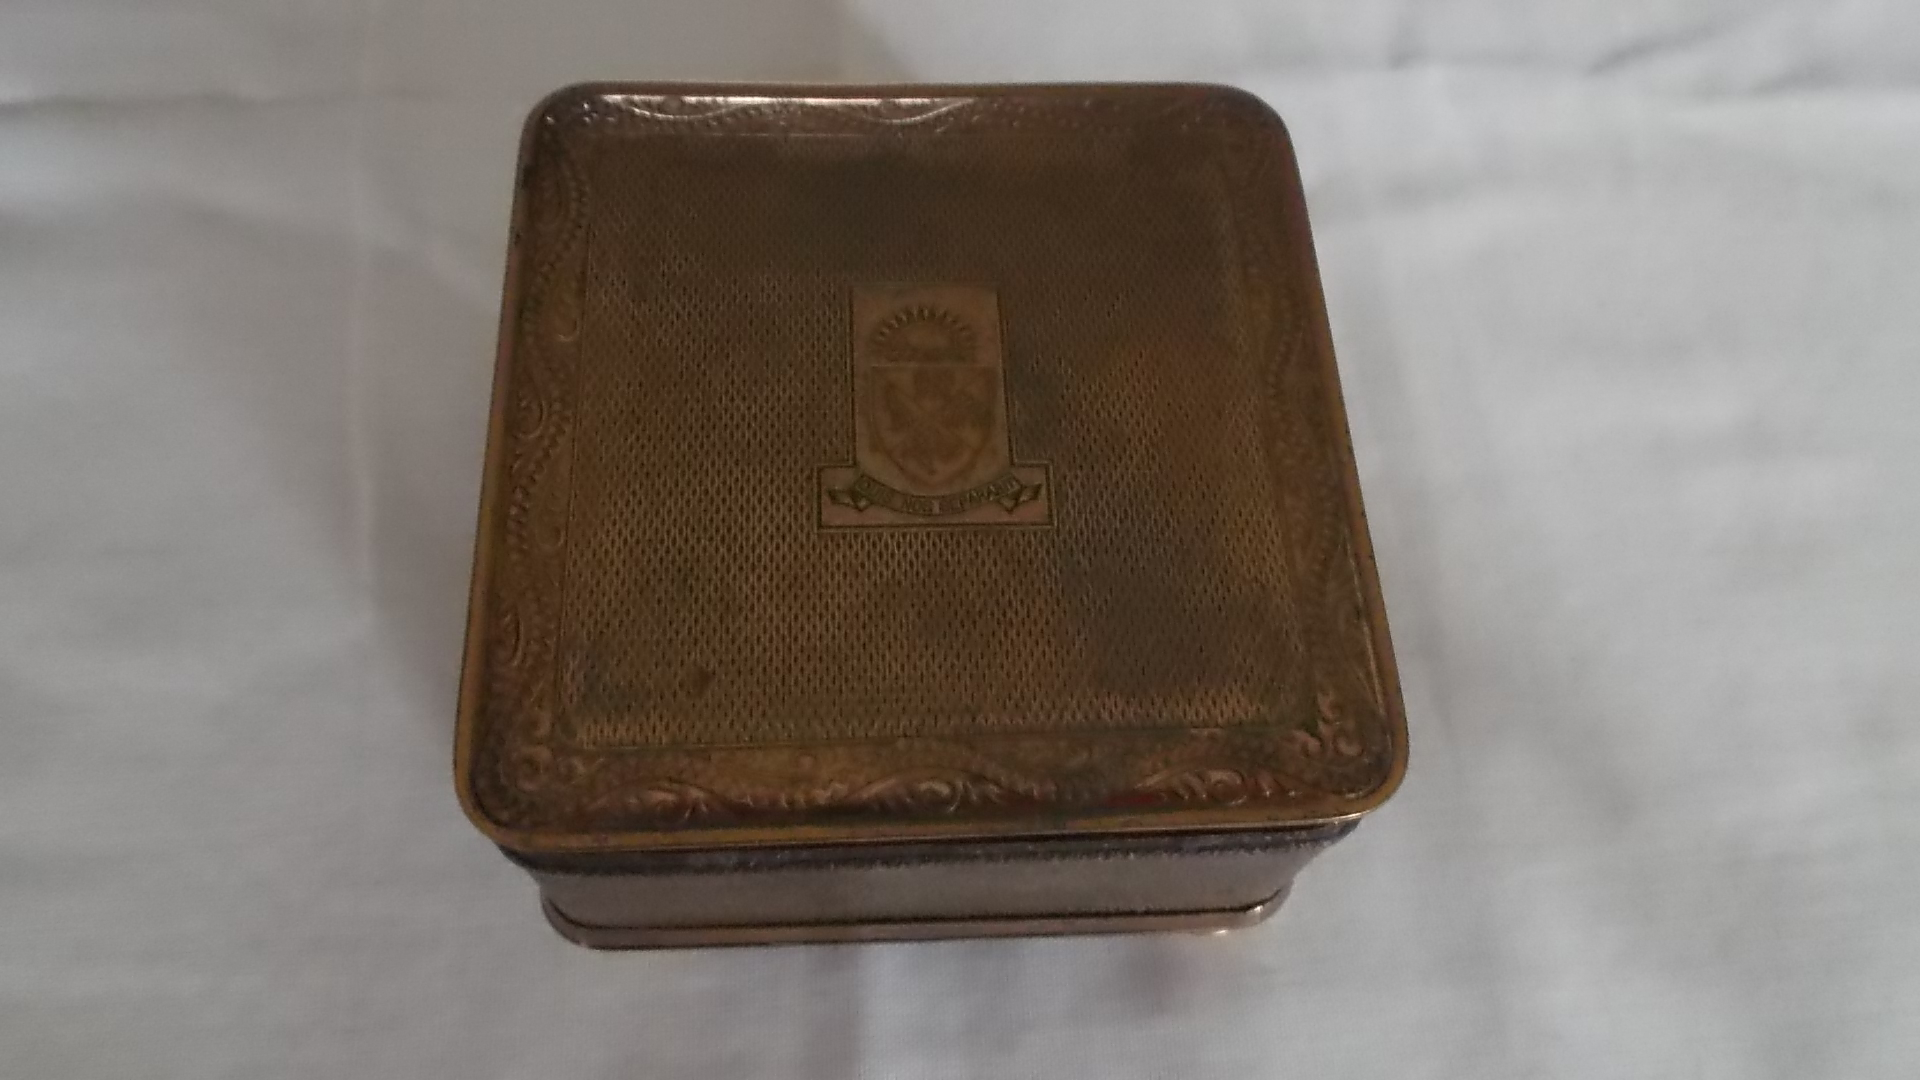 SOUVENIR LADIES JEWELLERY BOX FROM THE P&O LINE VESSEL THE SS ARCADIA